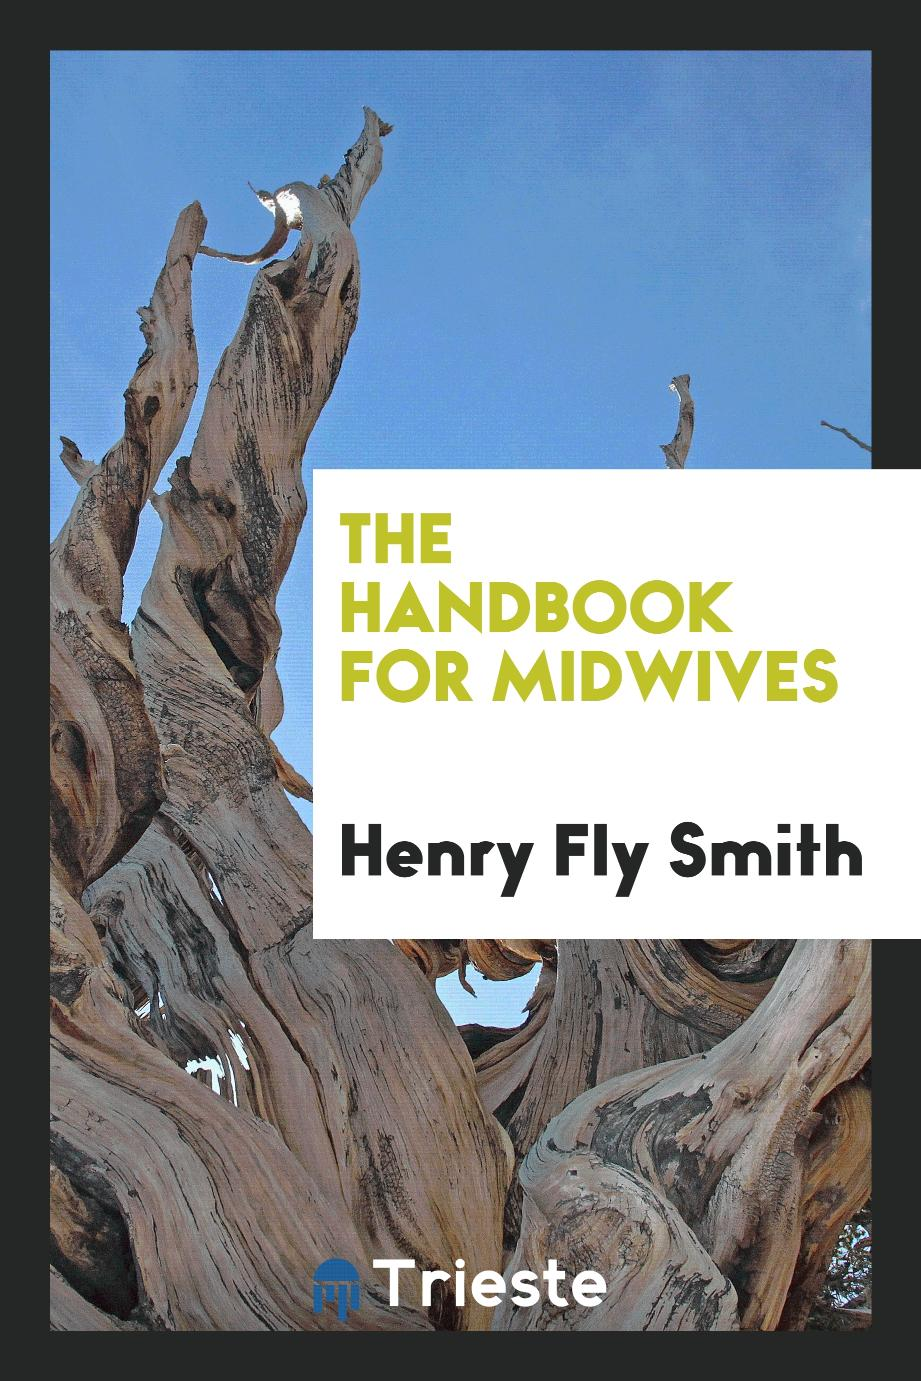 The Handbook for Midwives